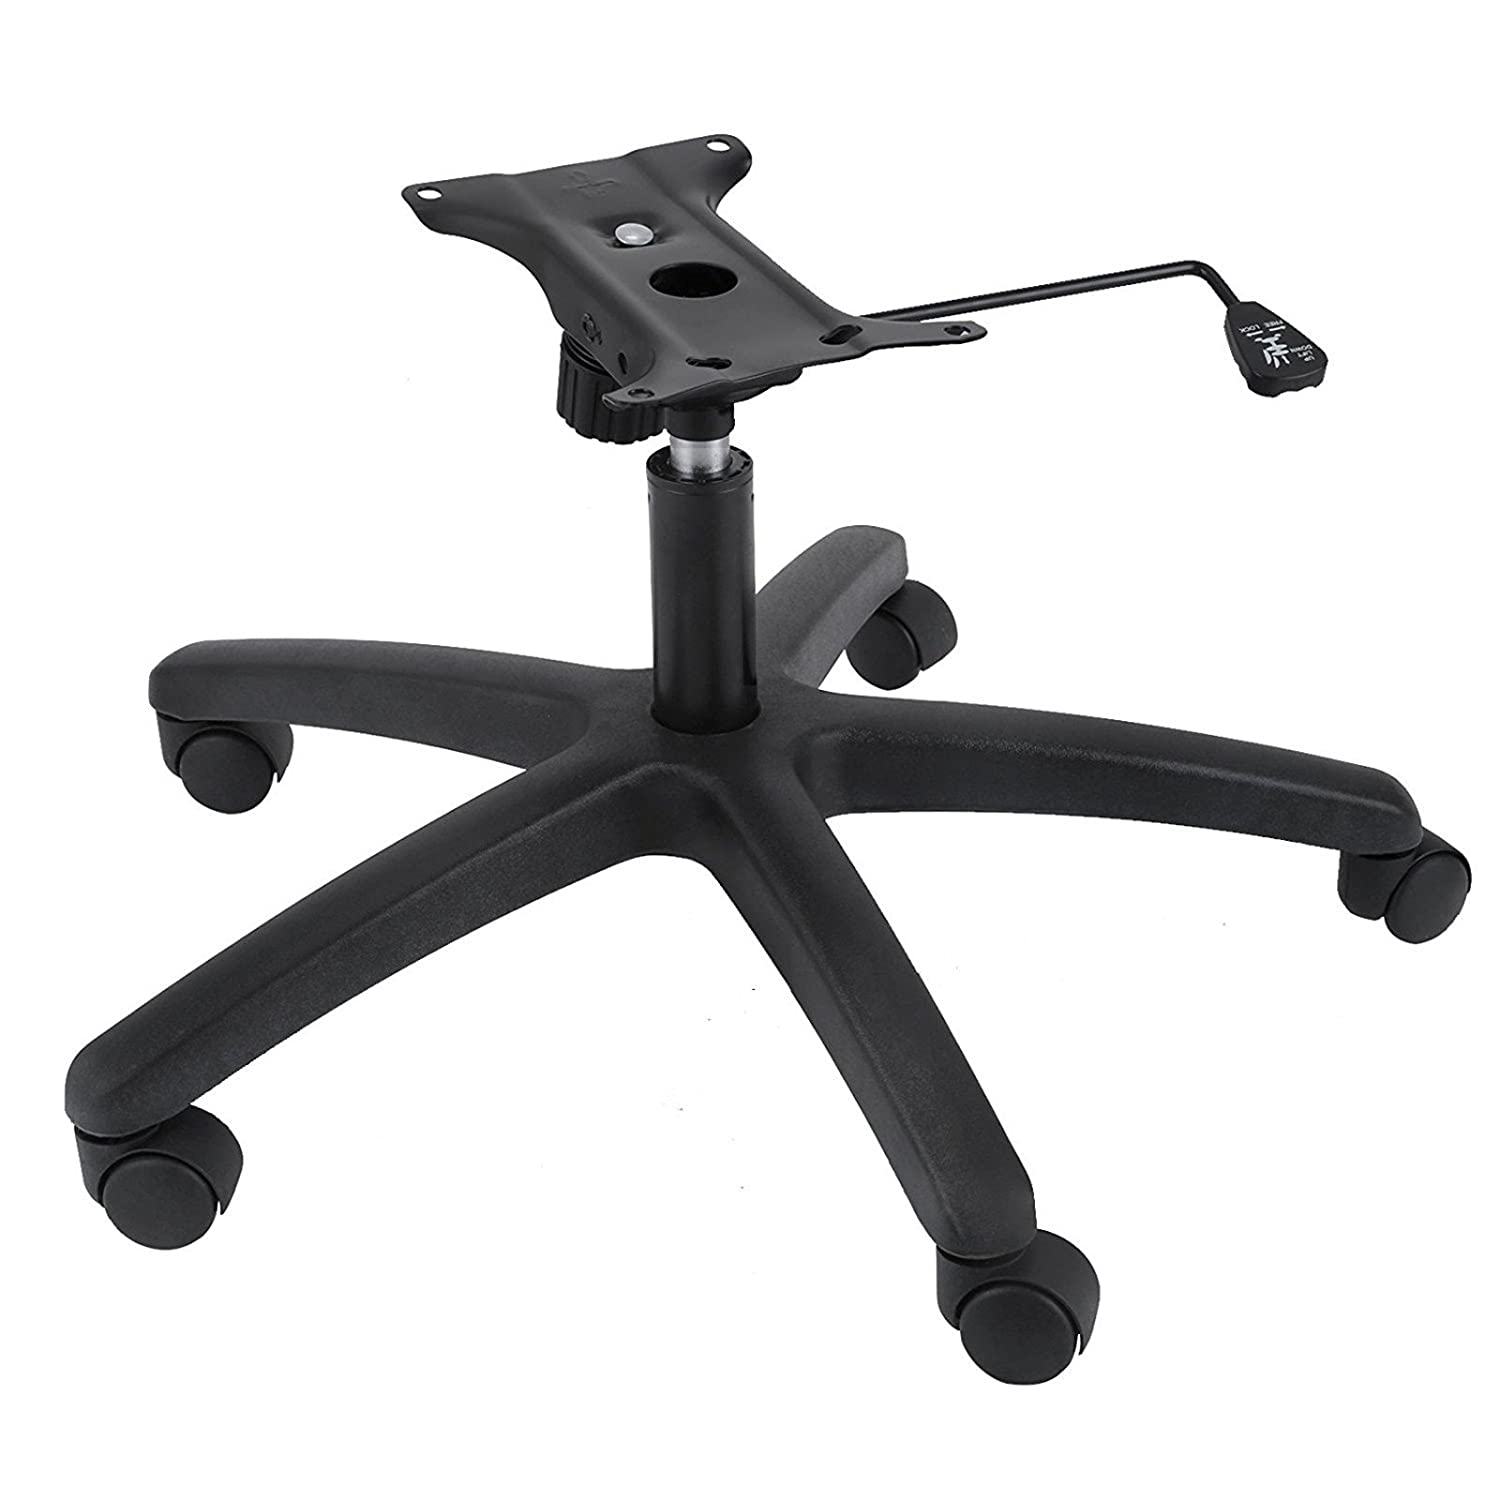 SHZOND 350 Pounds Replacement Office Chair Base 28 Inch Swivel Chair Base with Casters Heavy Duty Black